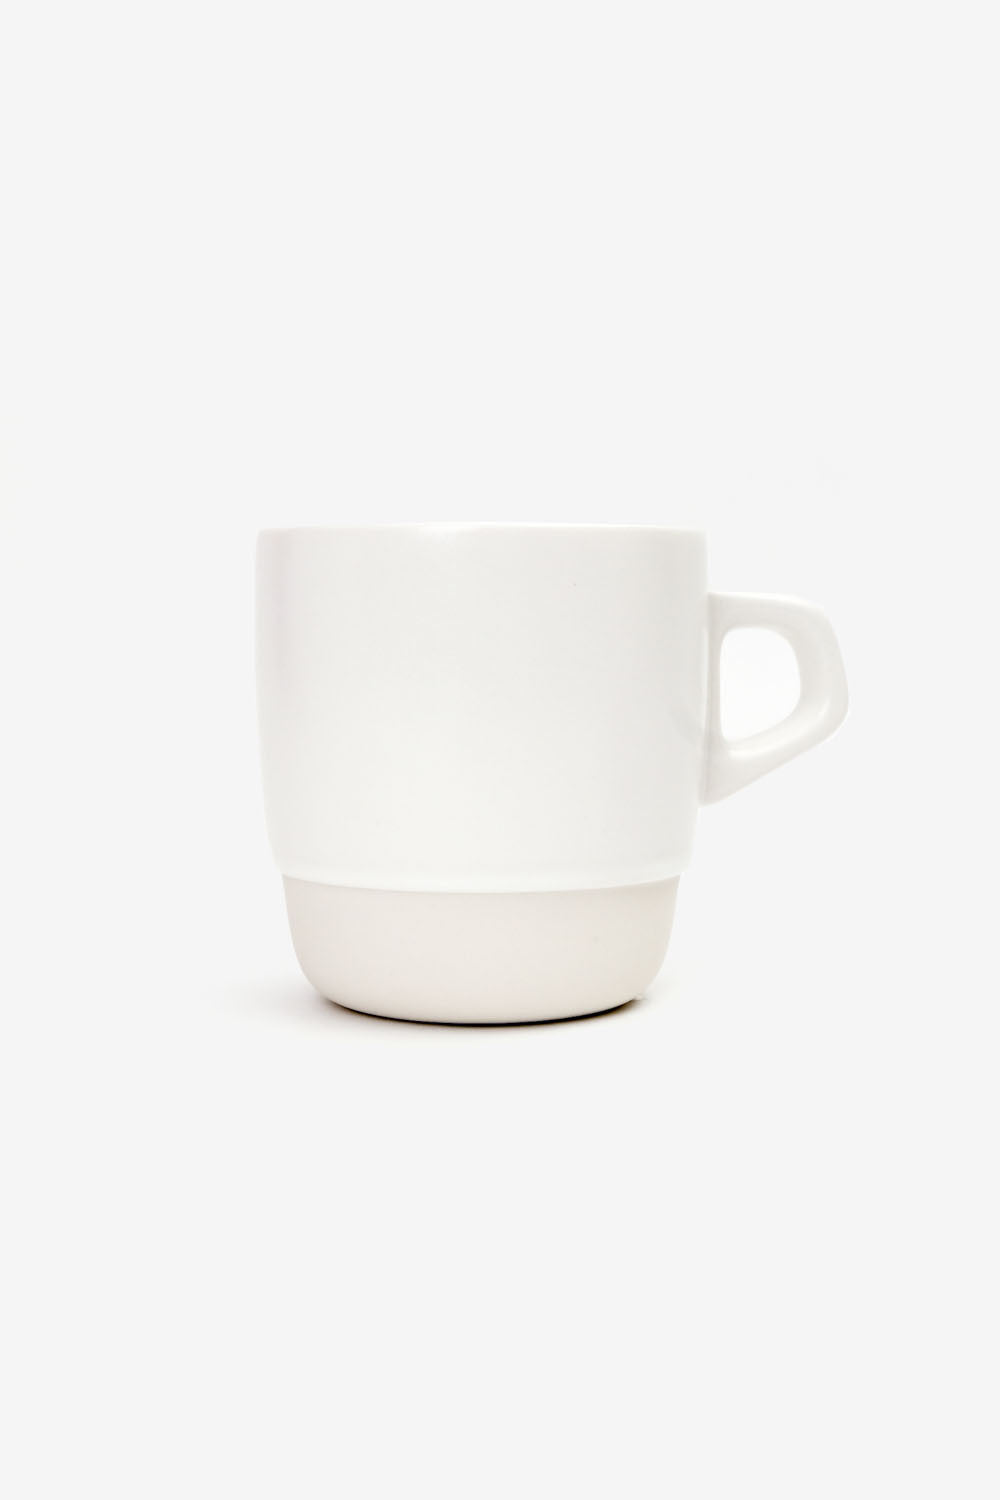 Stacking Mug White 320ml, Tableware, Kinto - Six and Sons